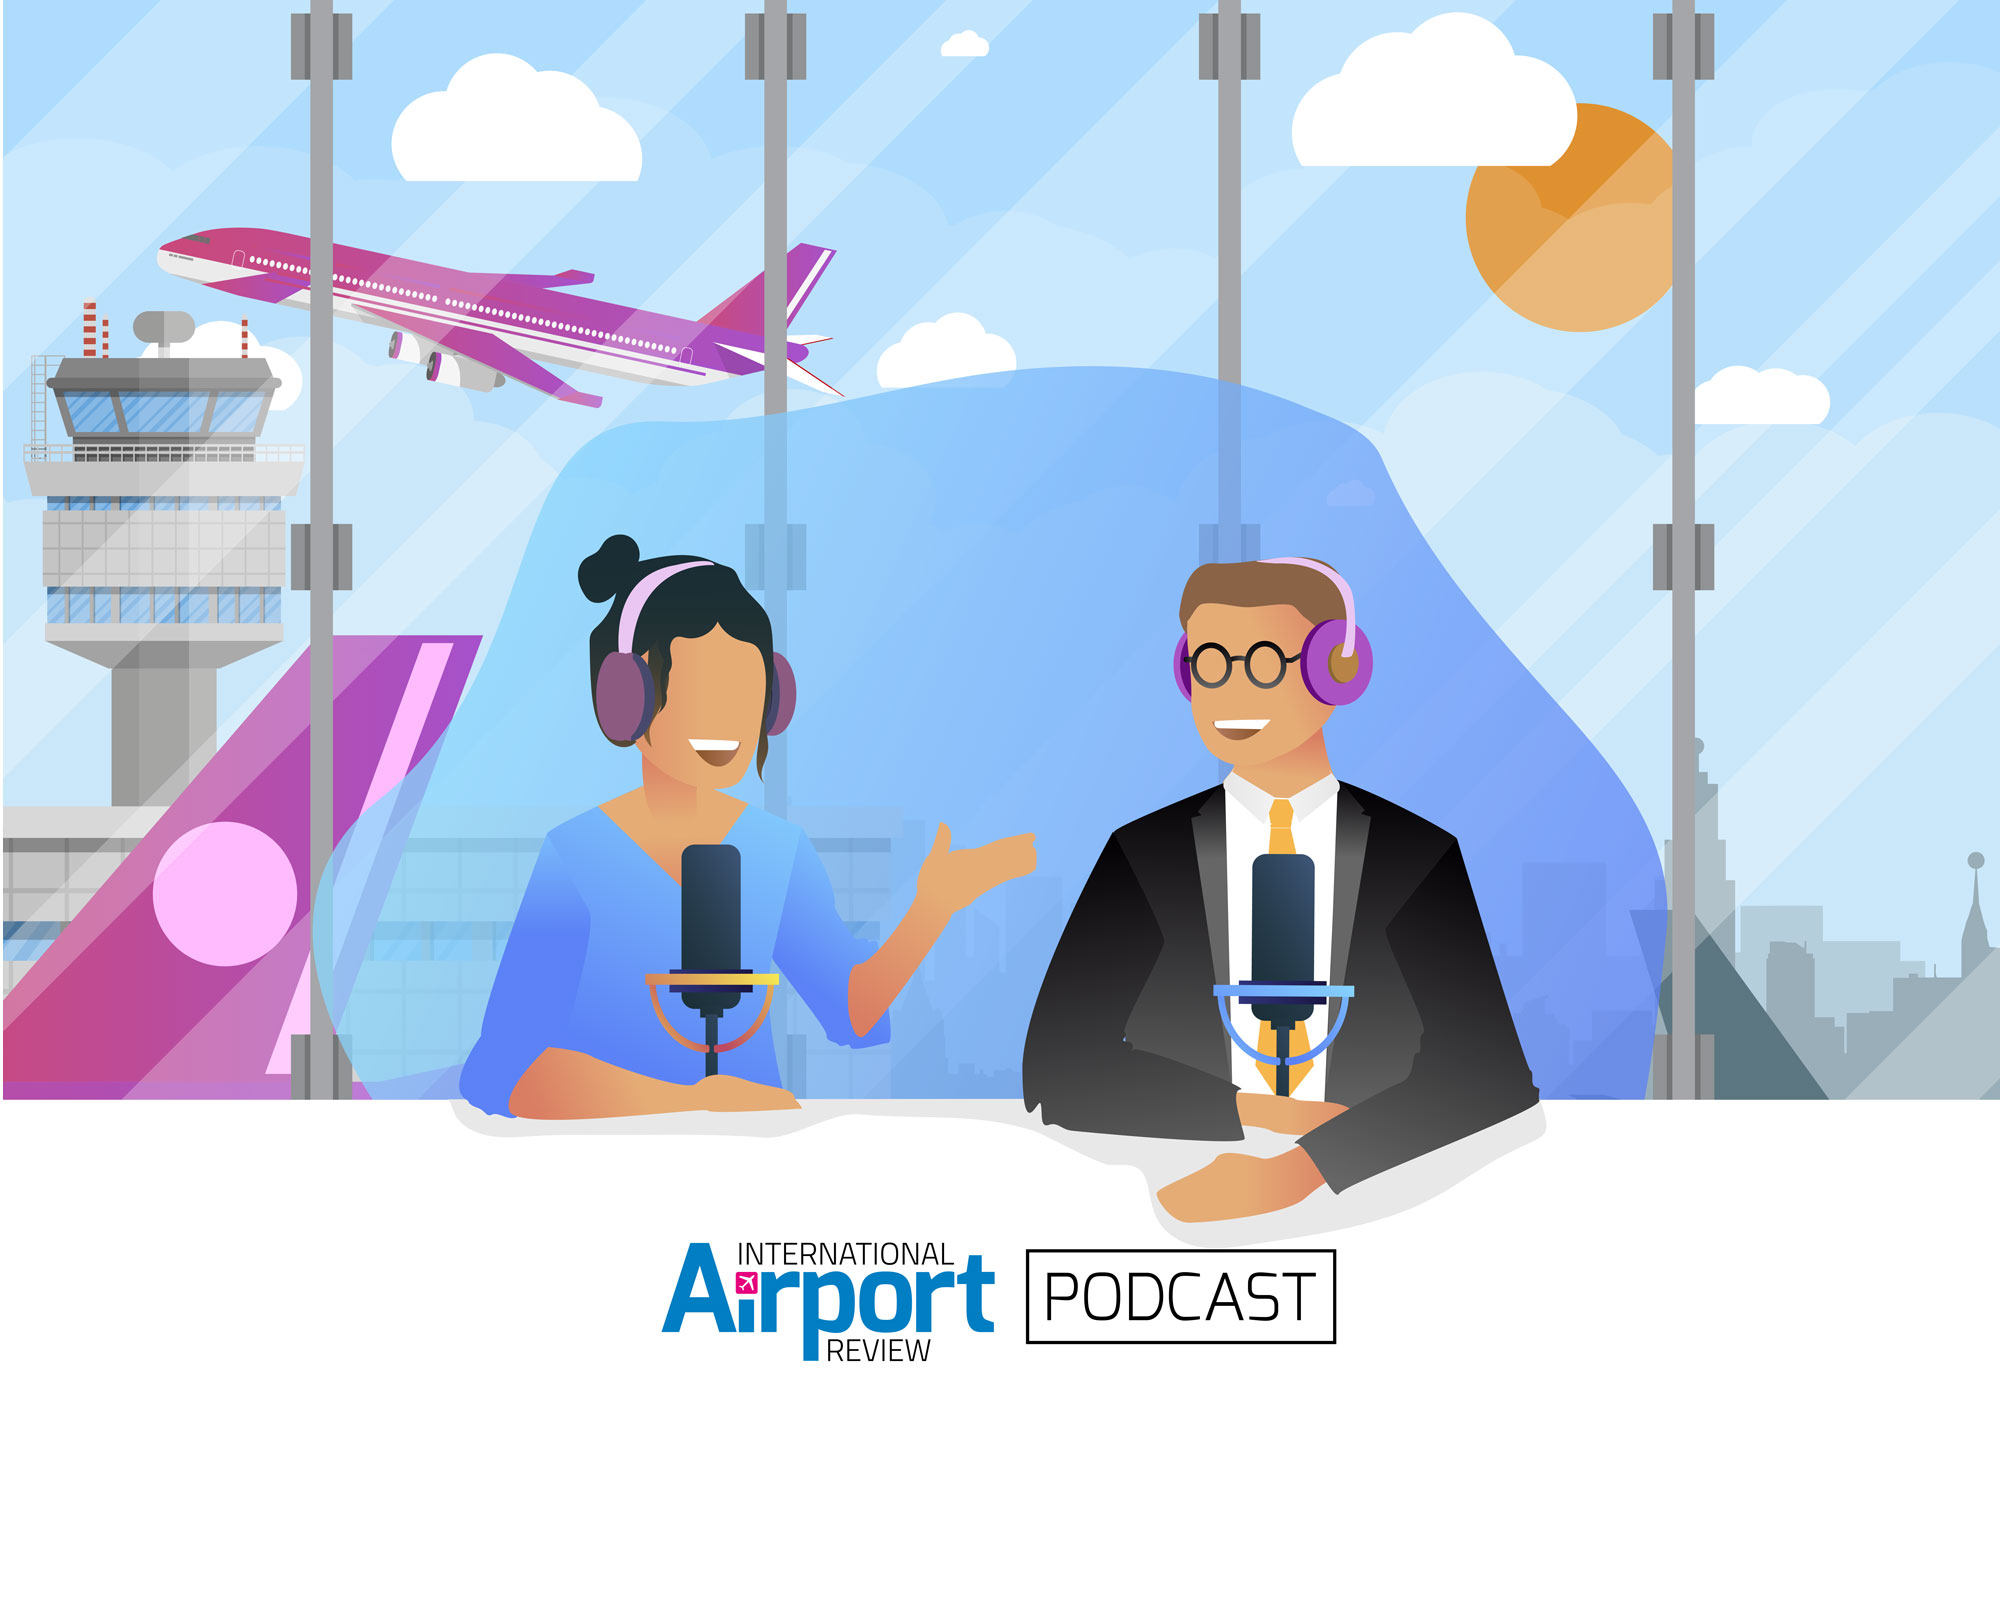 International Airport Review Podcast - Brian Cobb